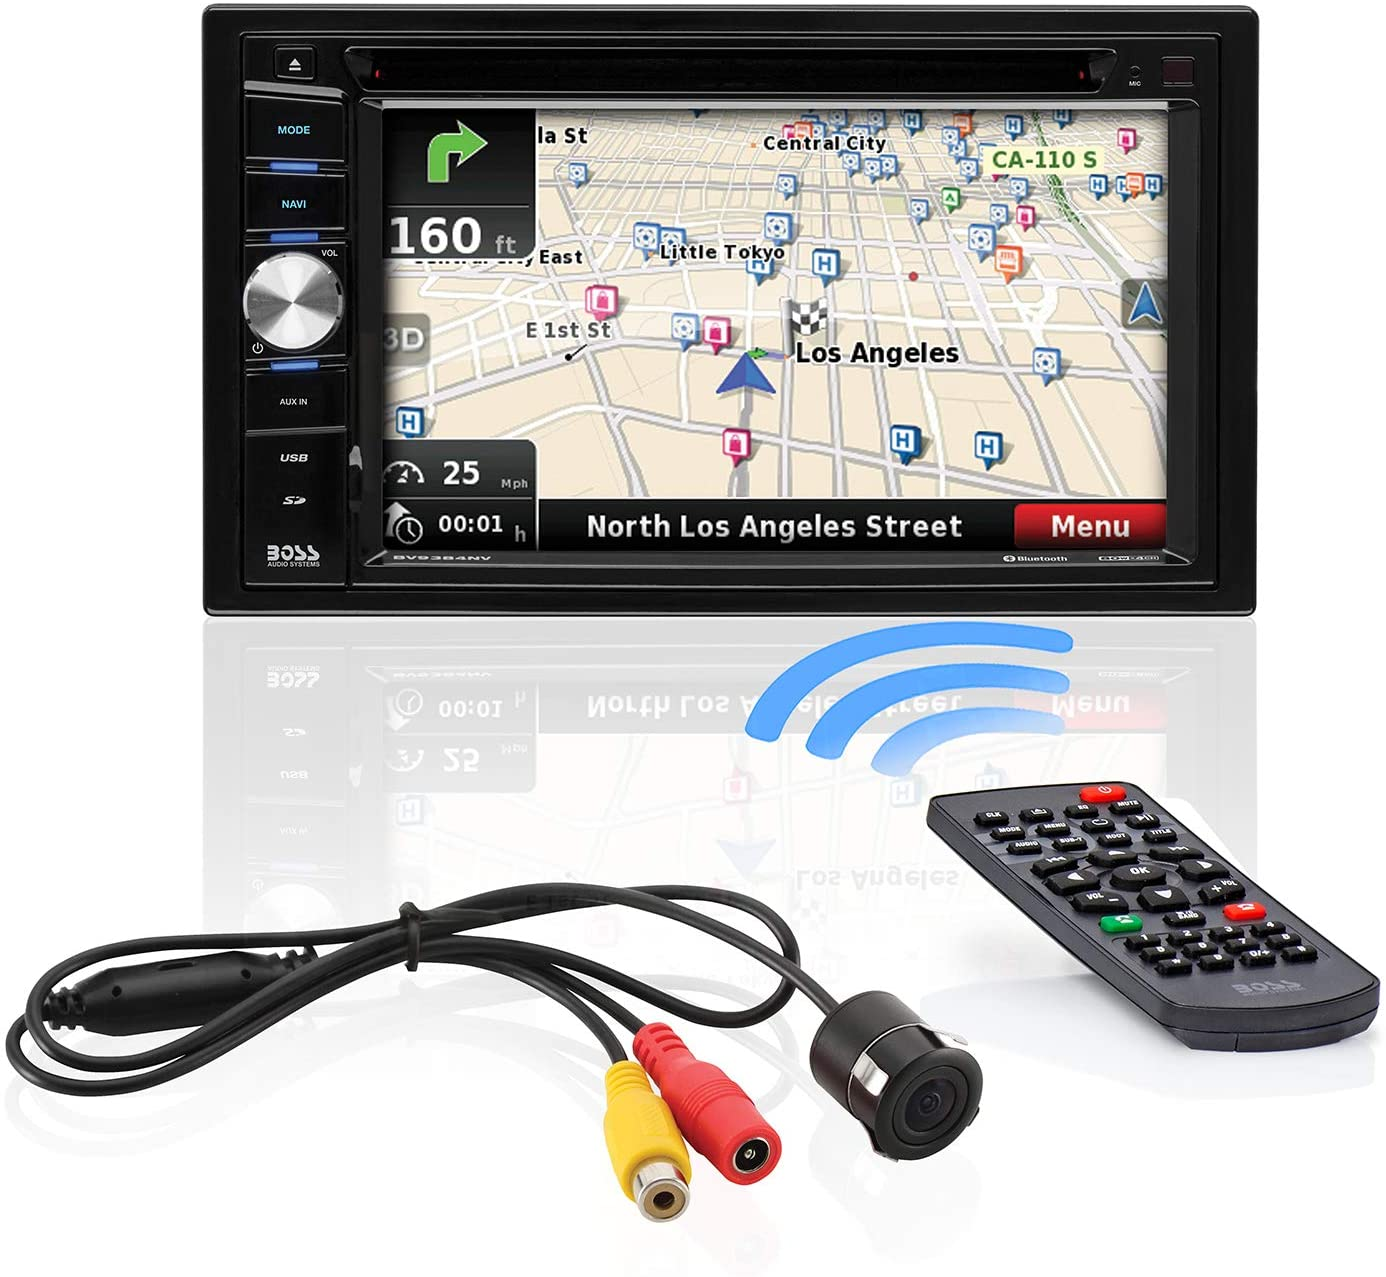 BOSS Audio Spring new work Systems BVNV9384RC Car Player DVD Navigation GPS and Max 70% OFF